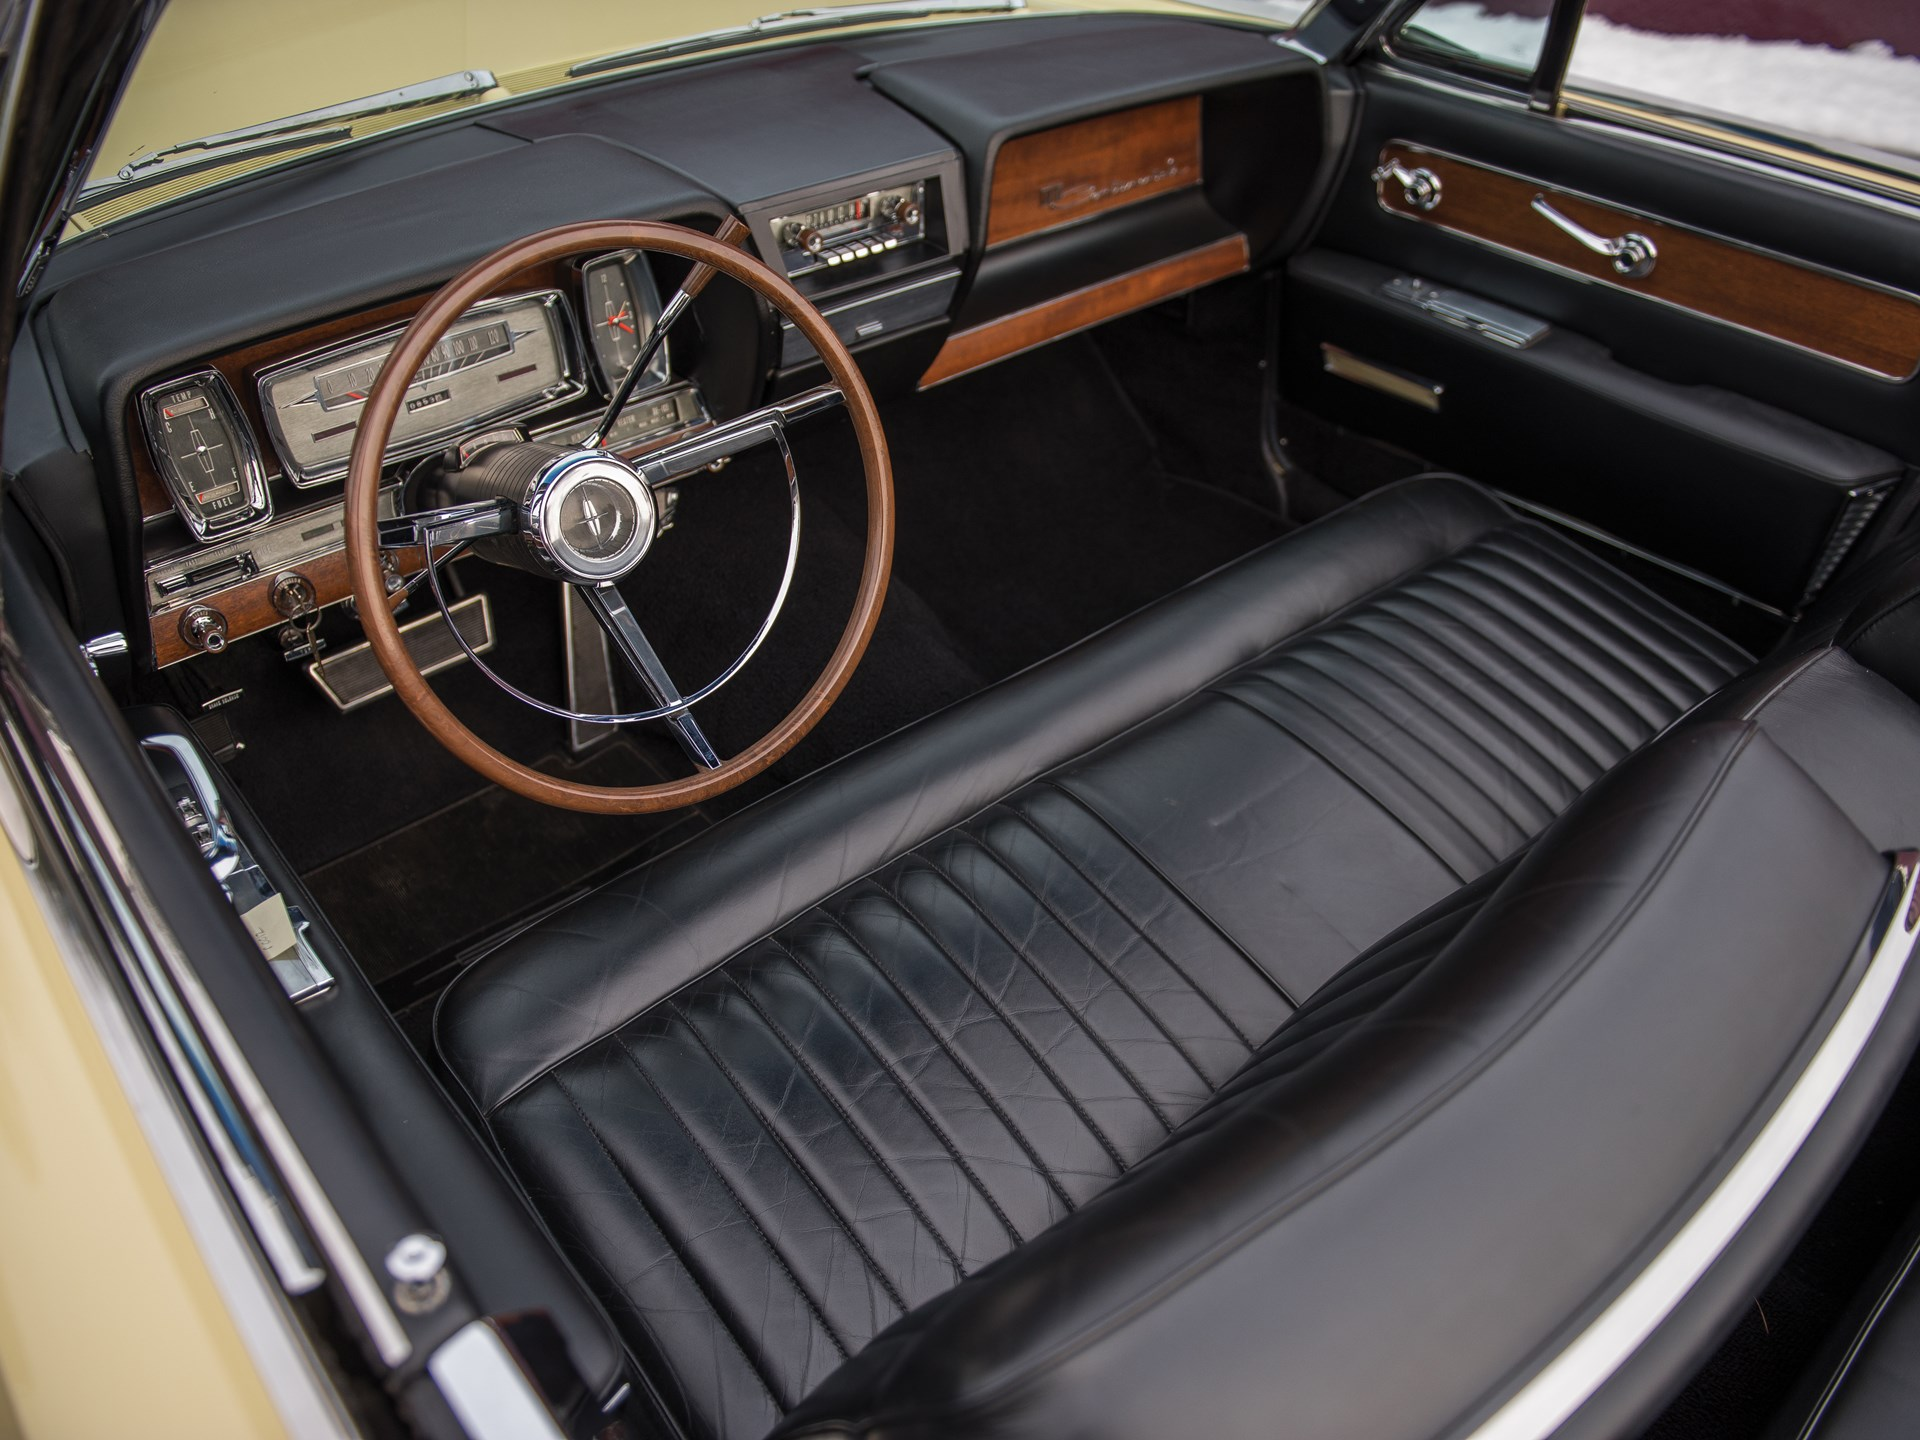 1961 Lincoln Continental Four-Door Convertible